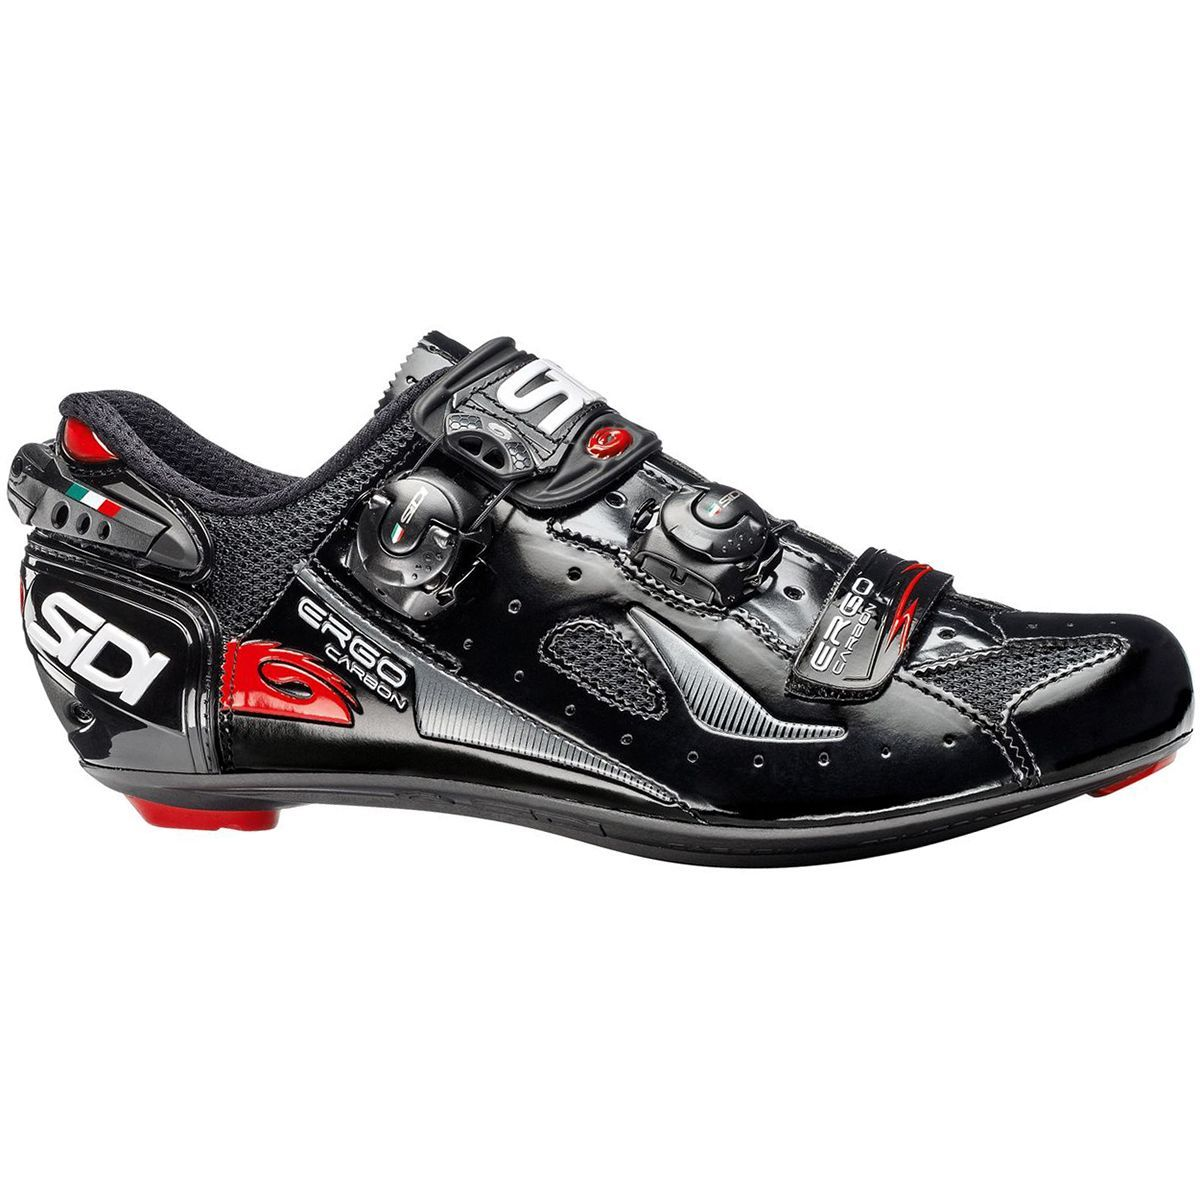 2018 New SIDI Genius 7 Road Bike Bicycle Cycling Shoes White//Black//Red